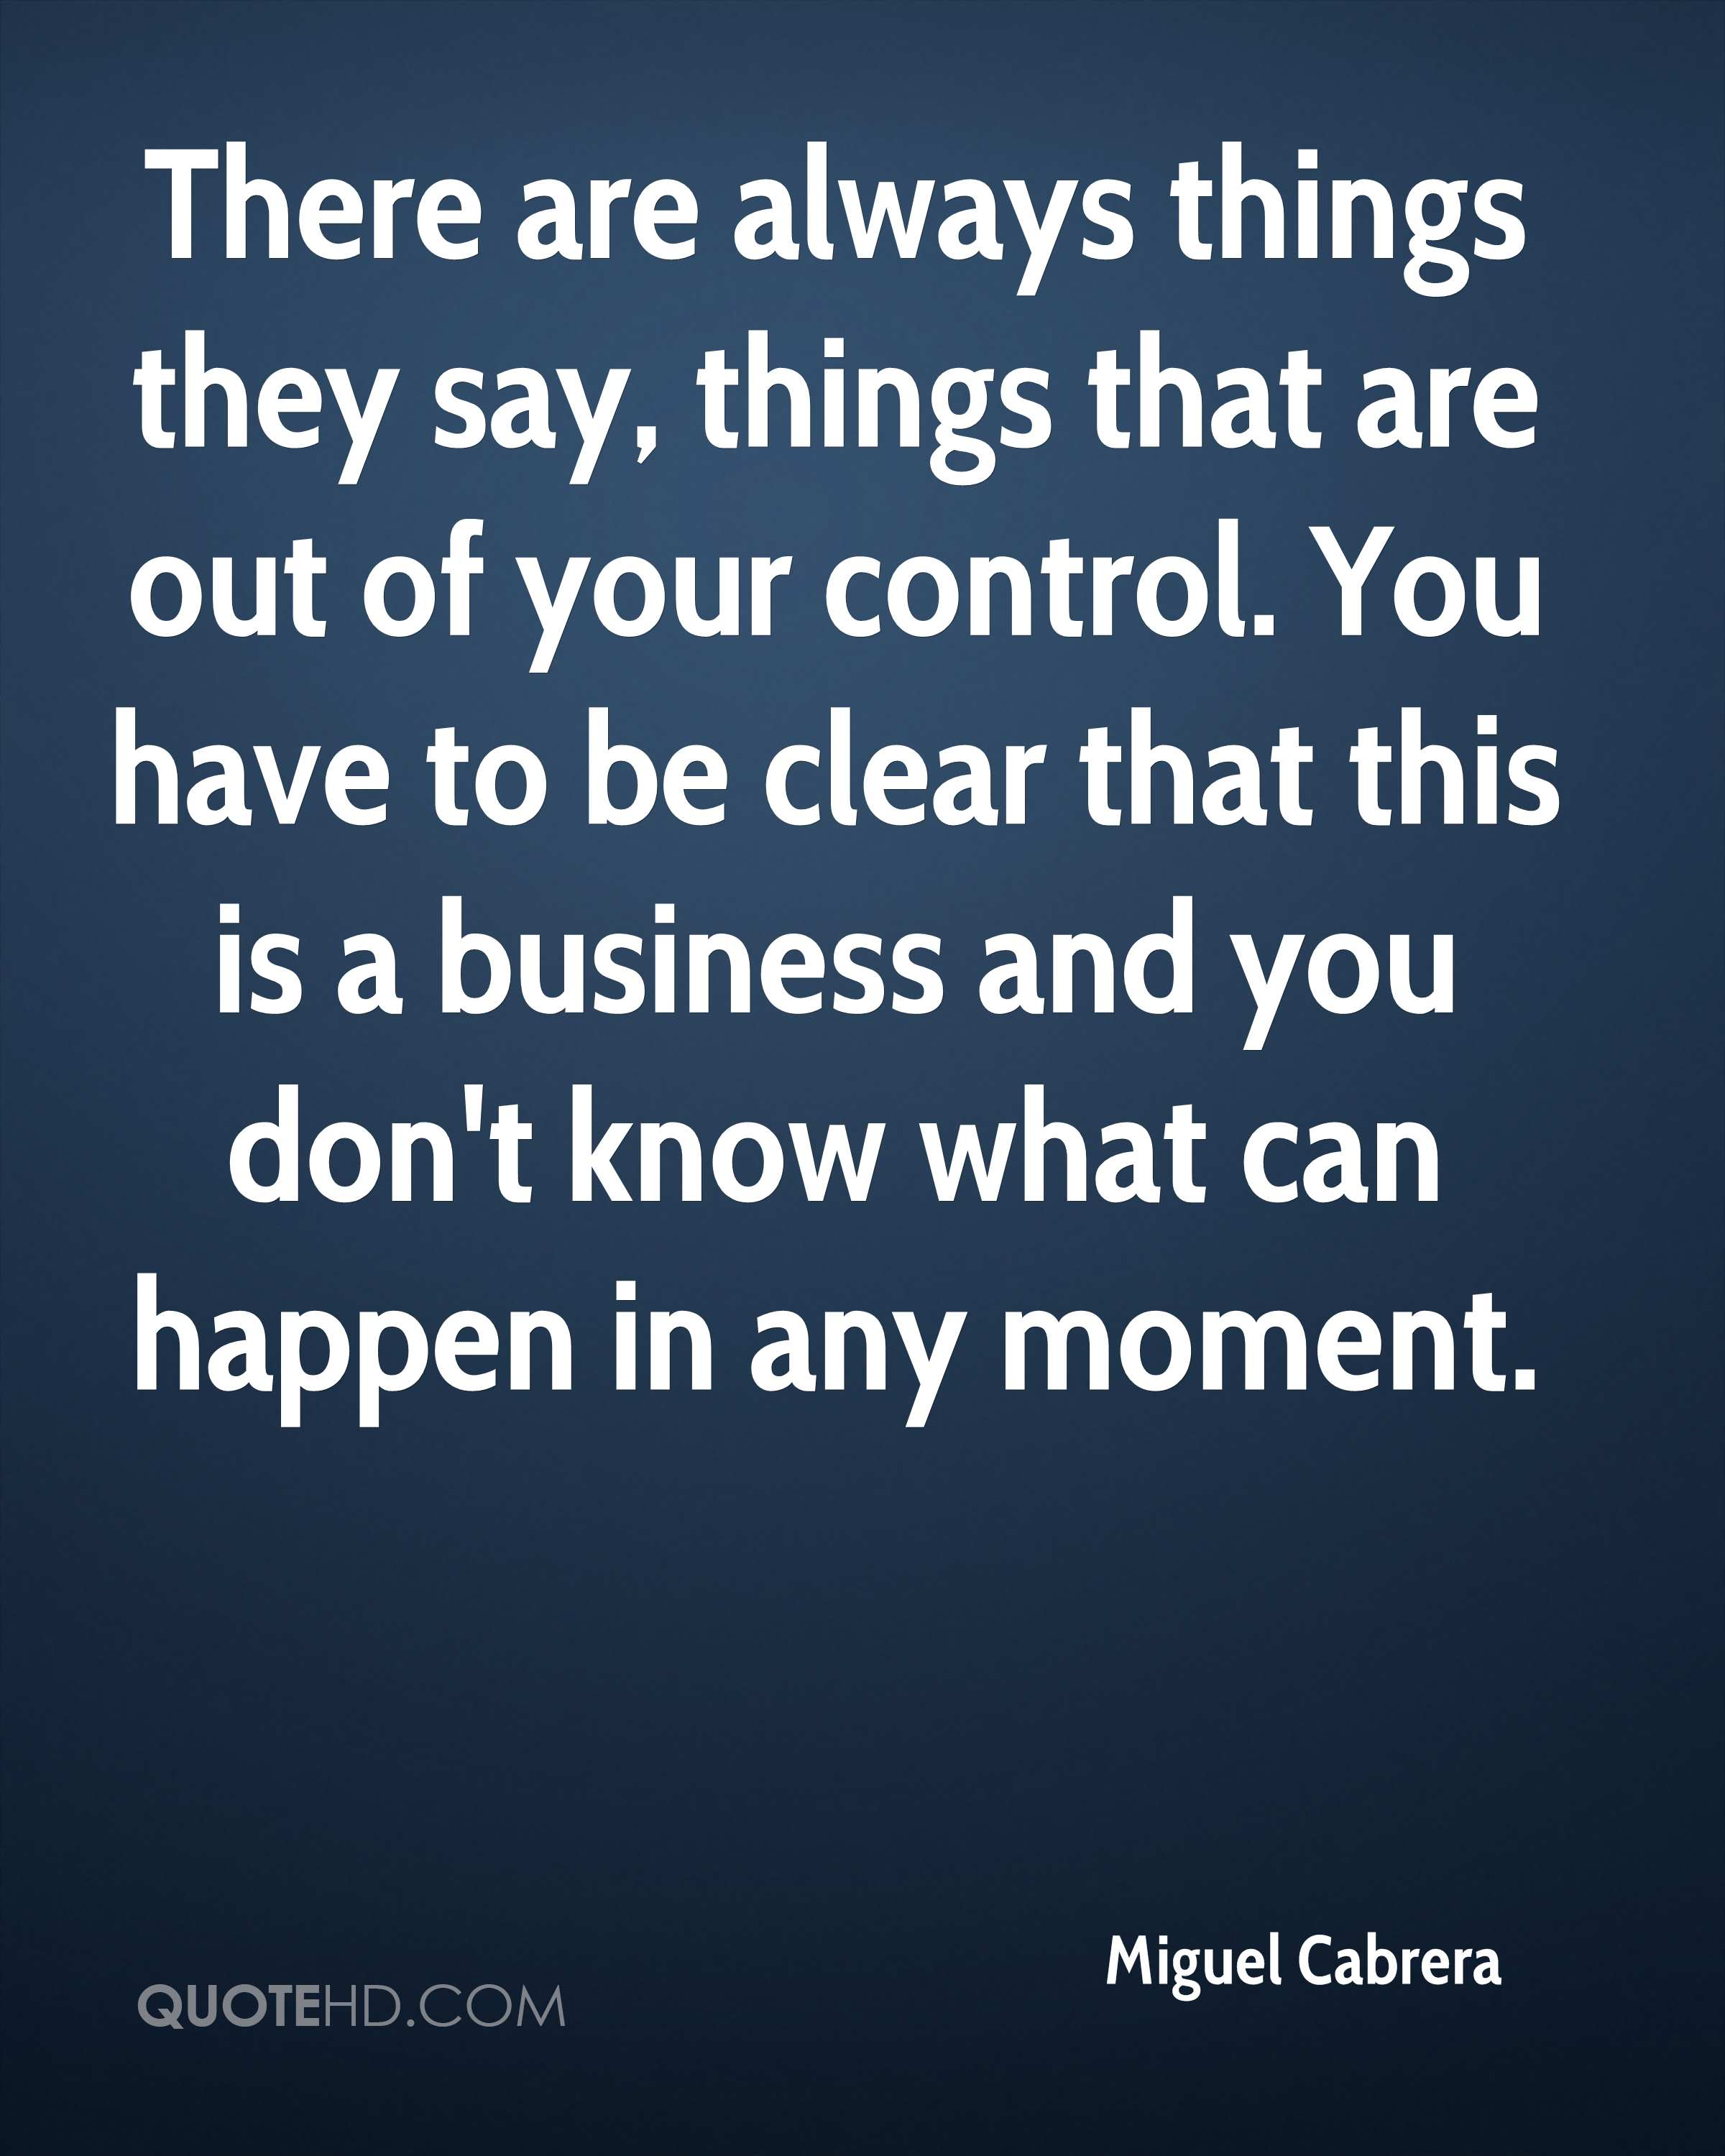 There are always things they say, things that are out of your control. You have to be clear that this is a business and you don't know what can happen in any moment.